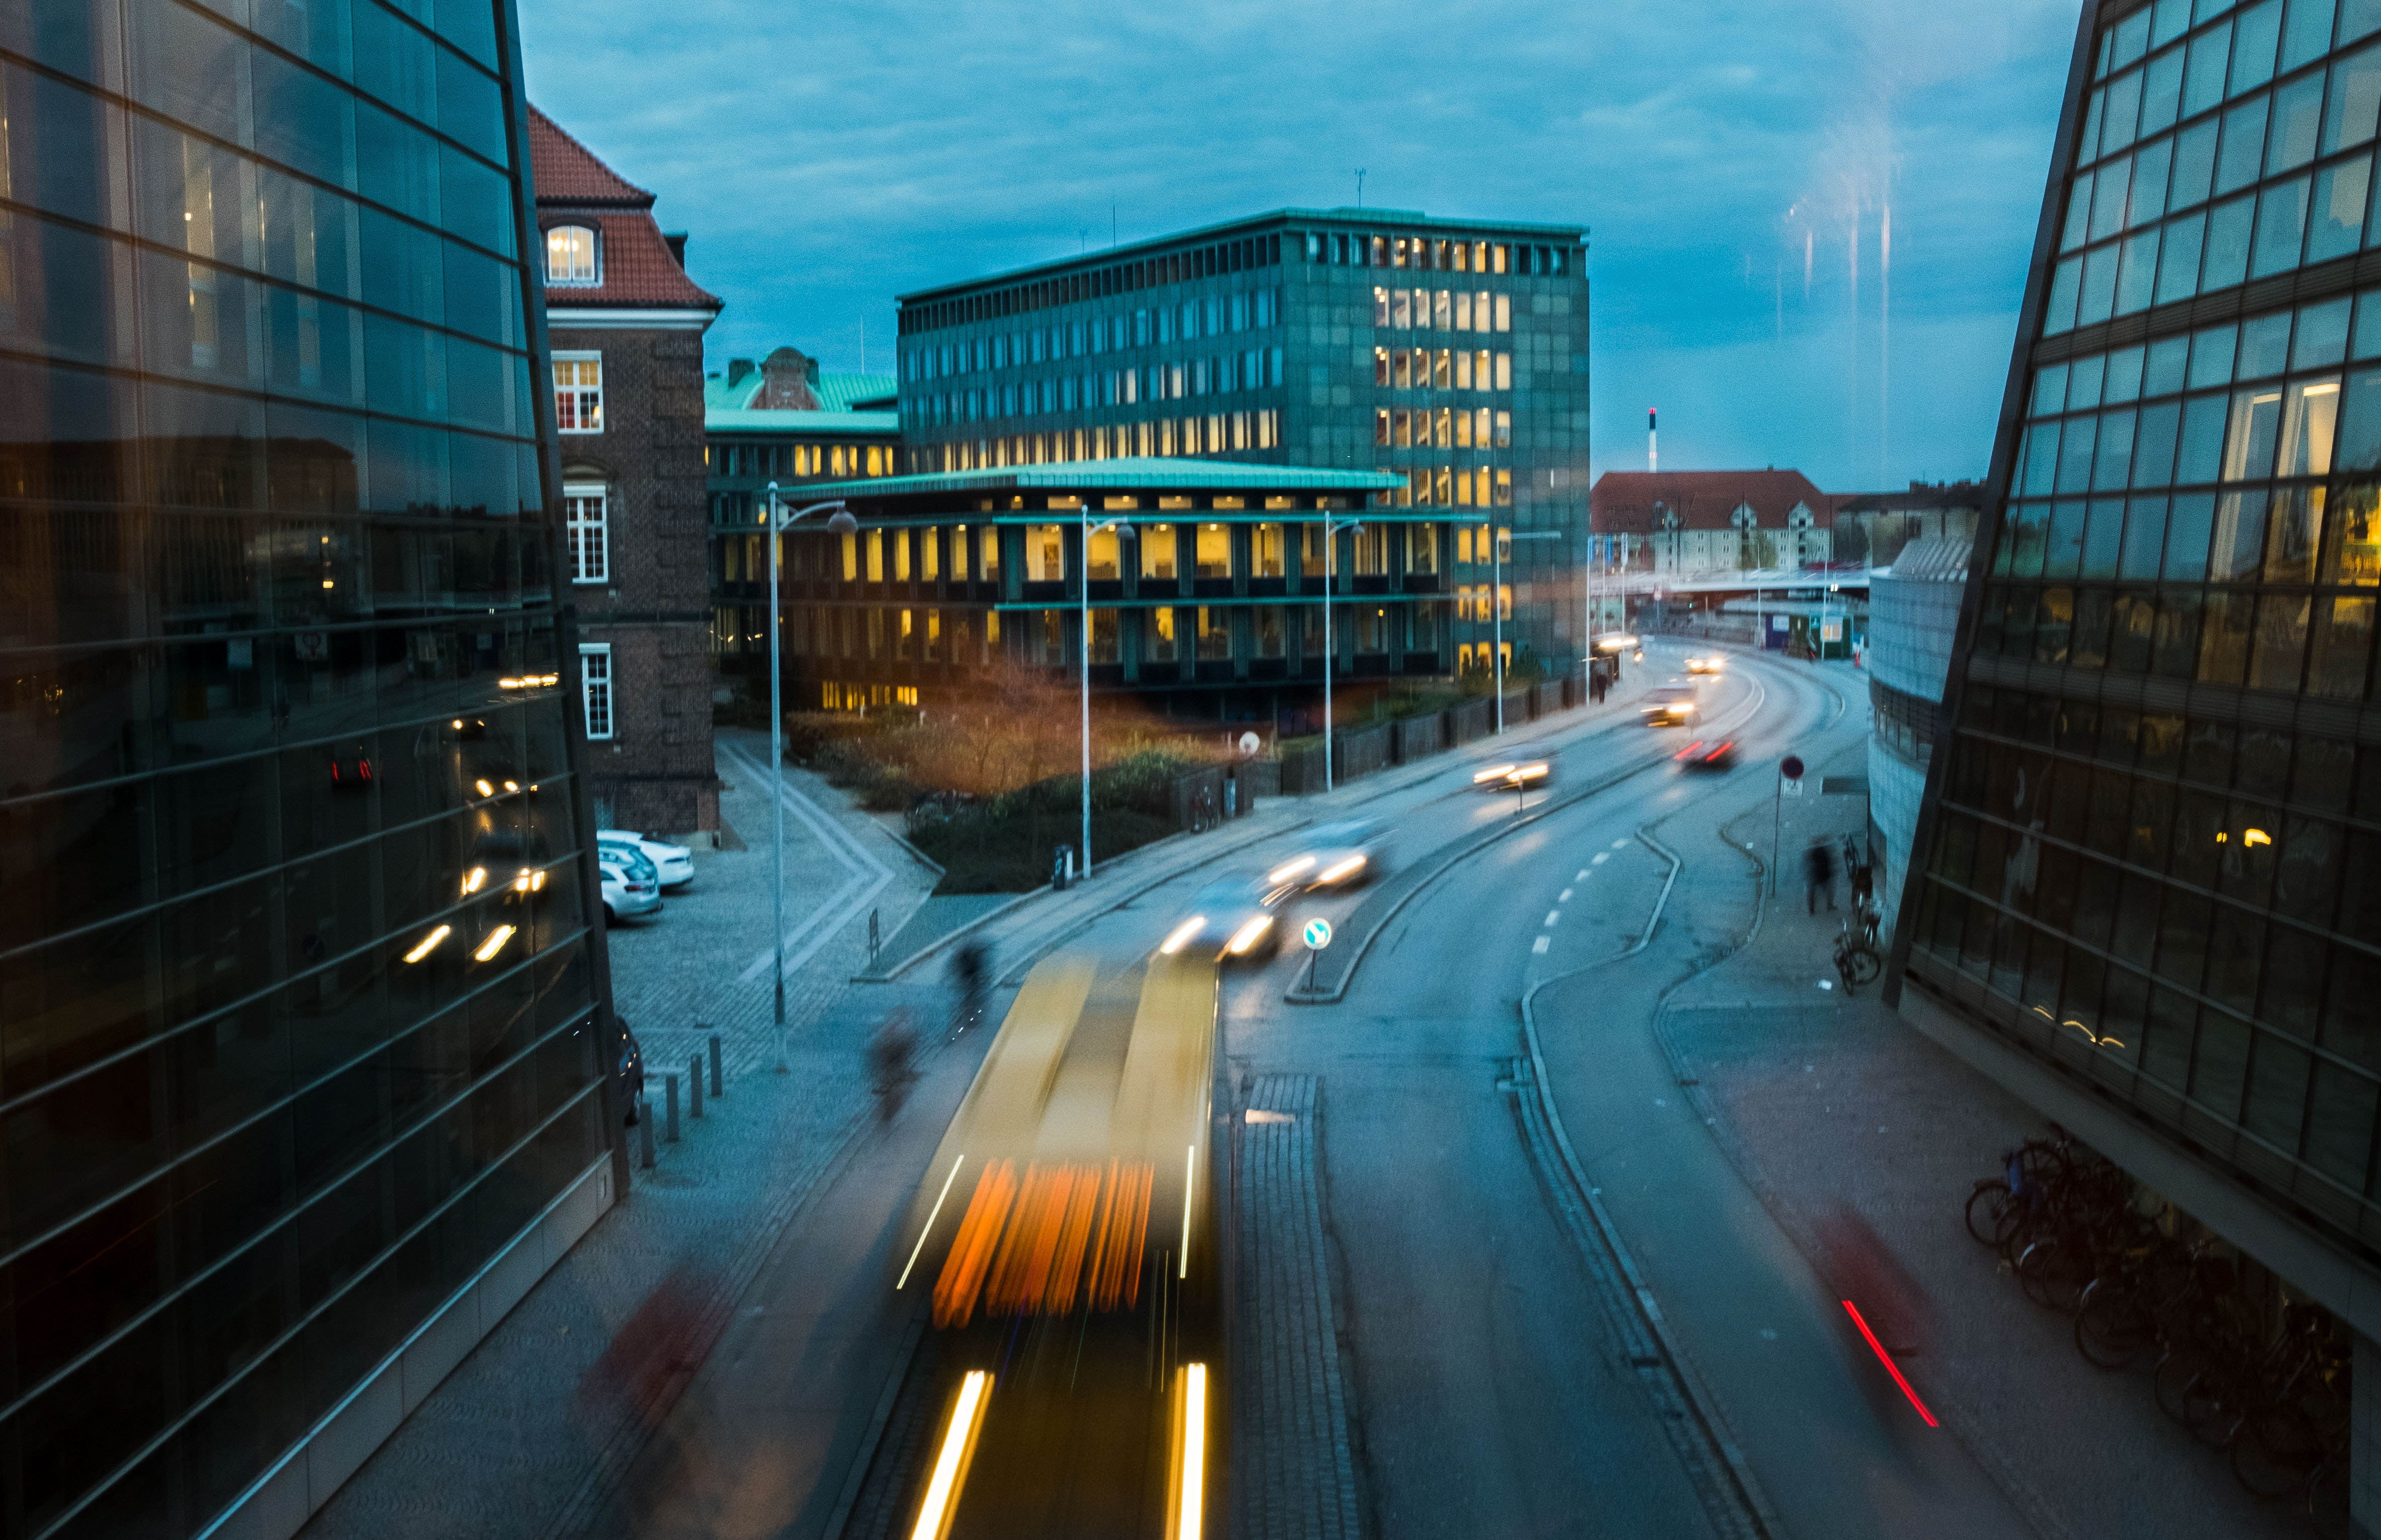 A long exposure shot of the urban nightscape and traffic in Copenhagen.